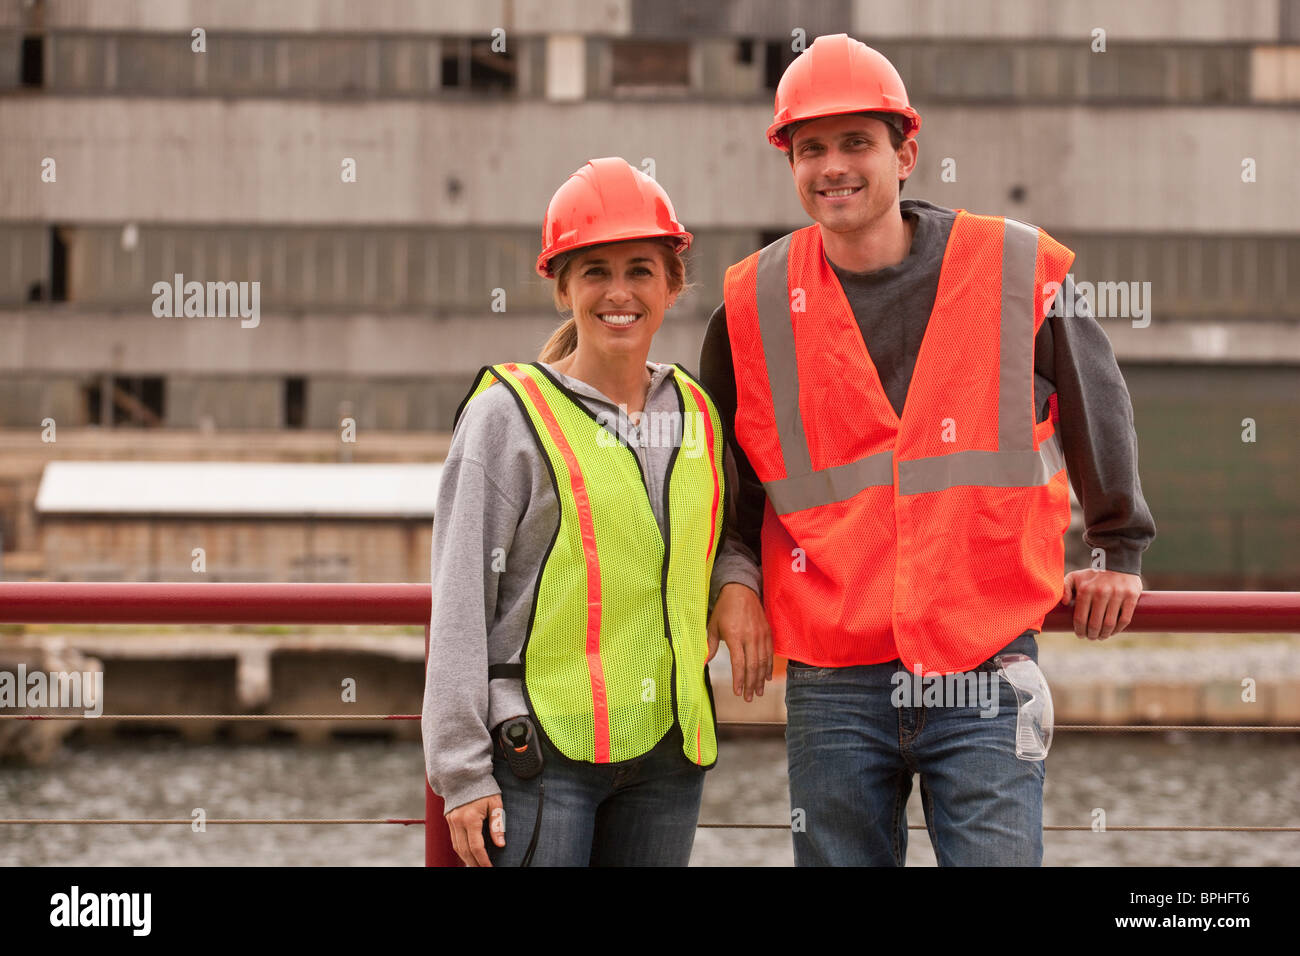 Marine terminal engineers at a commercial dock with an industrial building in the background - Stock Image